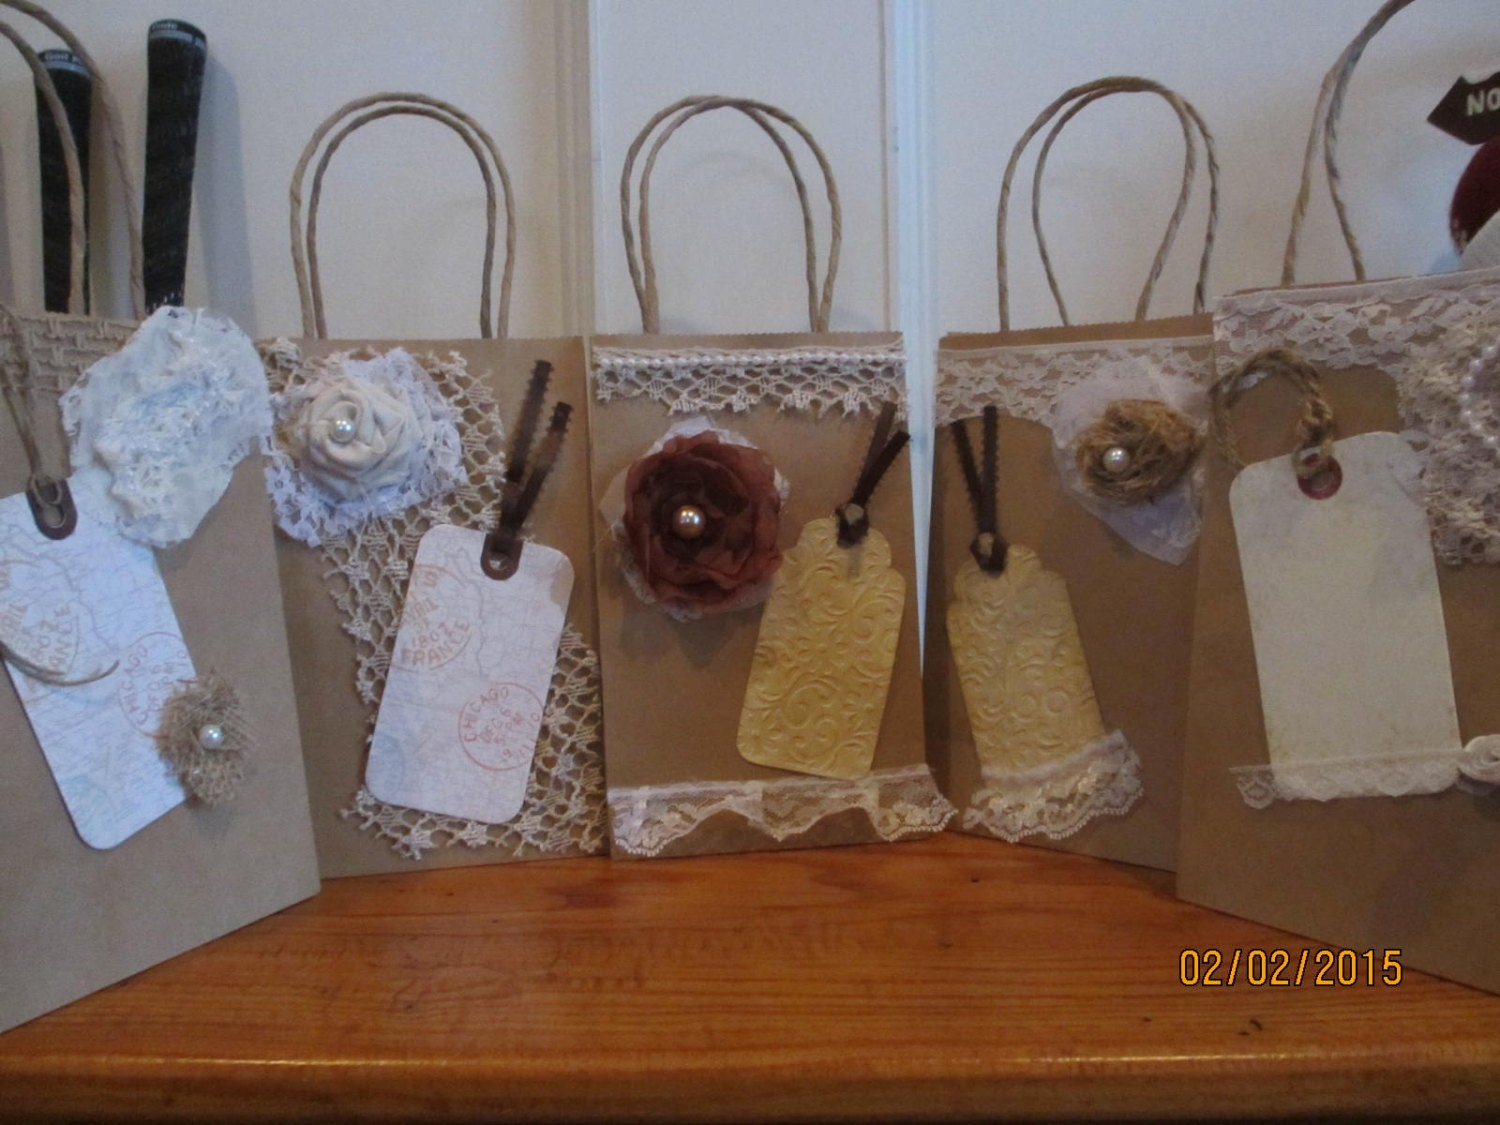 new item sale 5 assorted rustic shabby chic hotel wedding guest gift bags bridal shower favor bags wedding favors